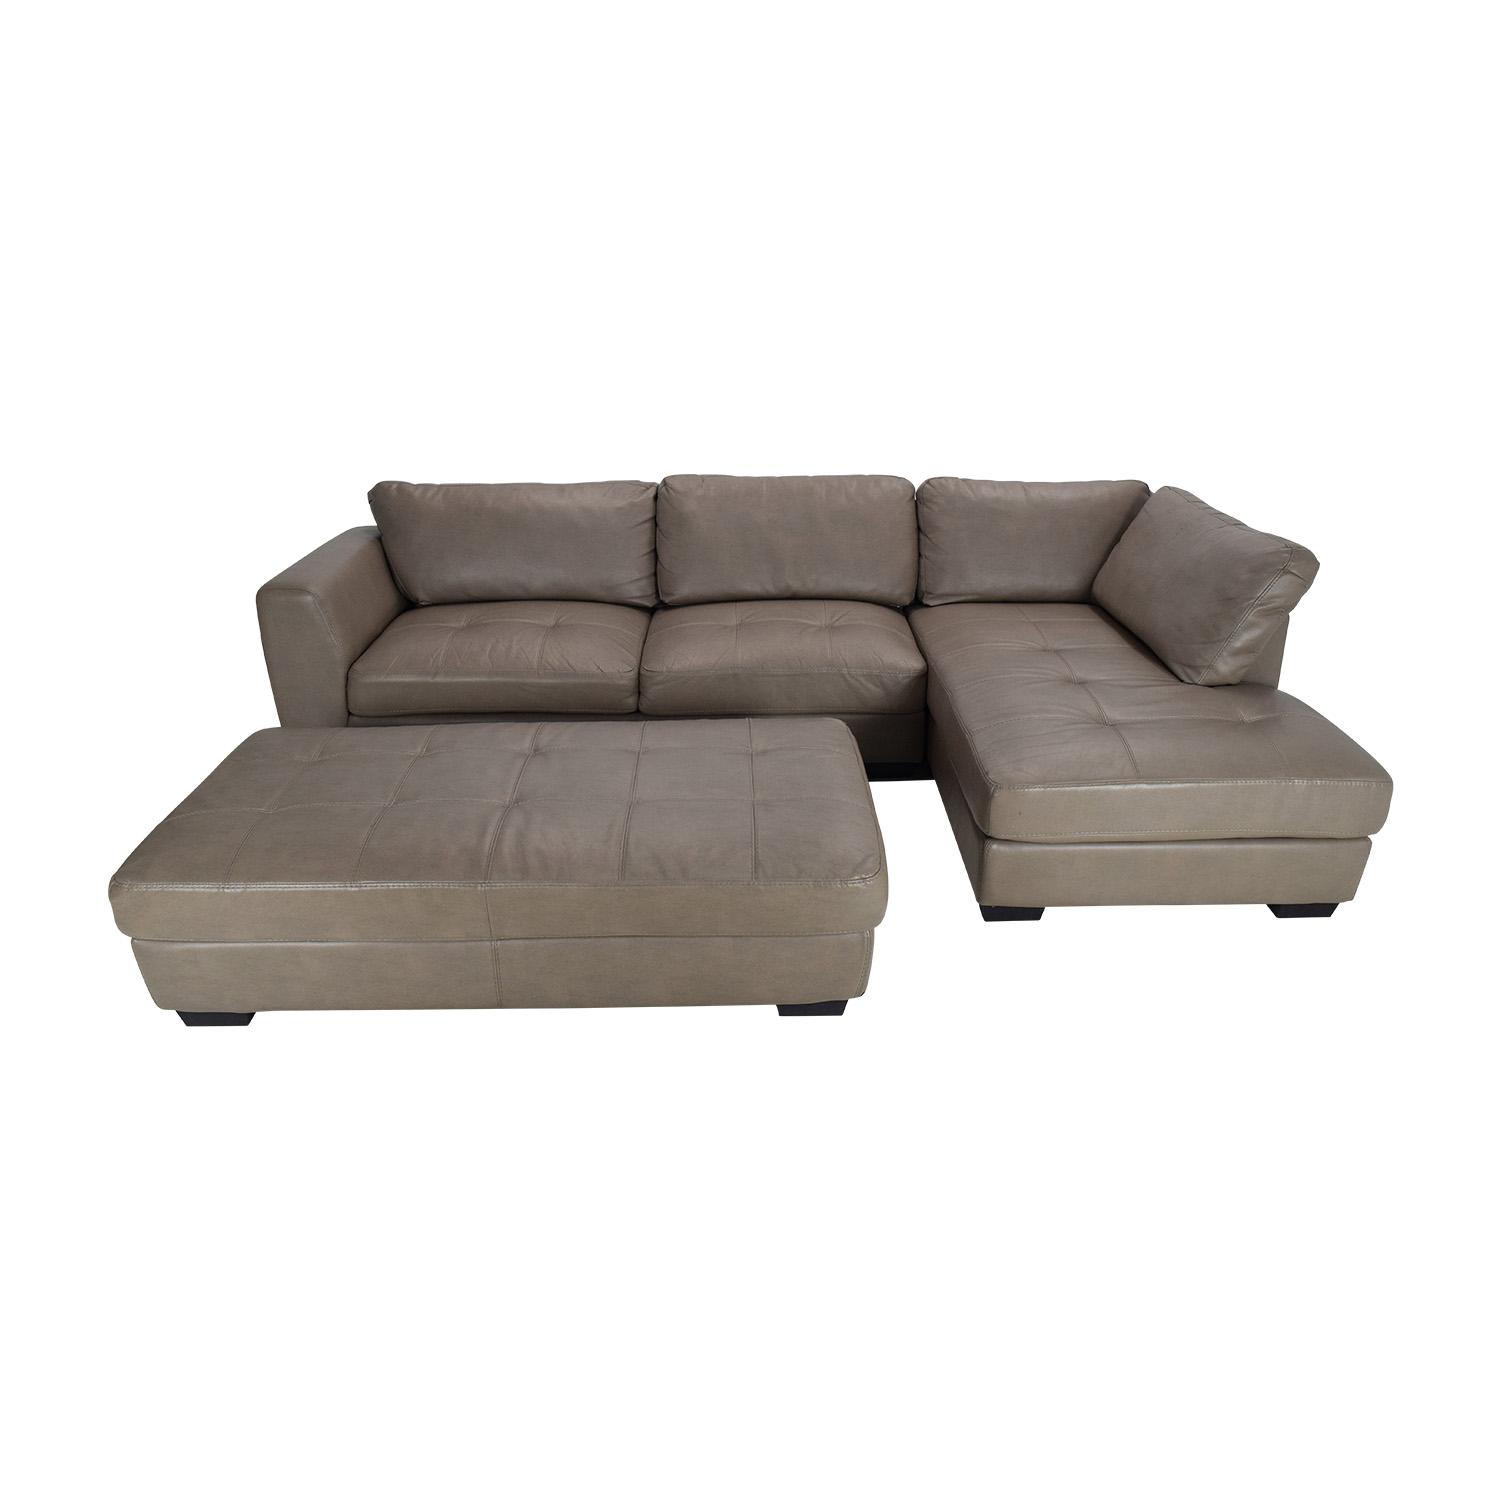 Groovy 50 Off Pellissima Luttrell Leather Sectional With Ottoman Sofas Gmtry Best Dining Table And Chair Ideas Images Gmtryco